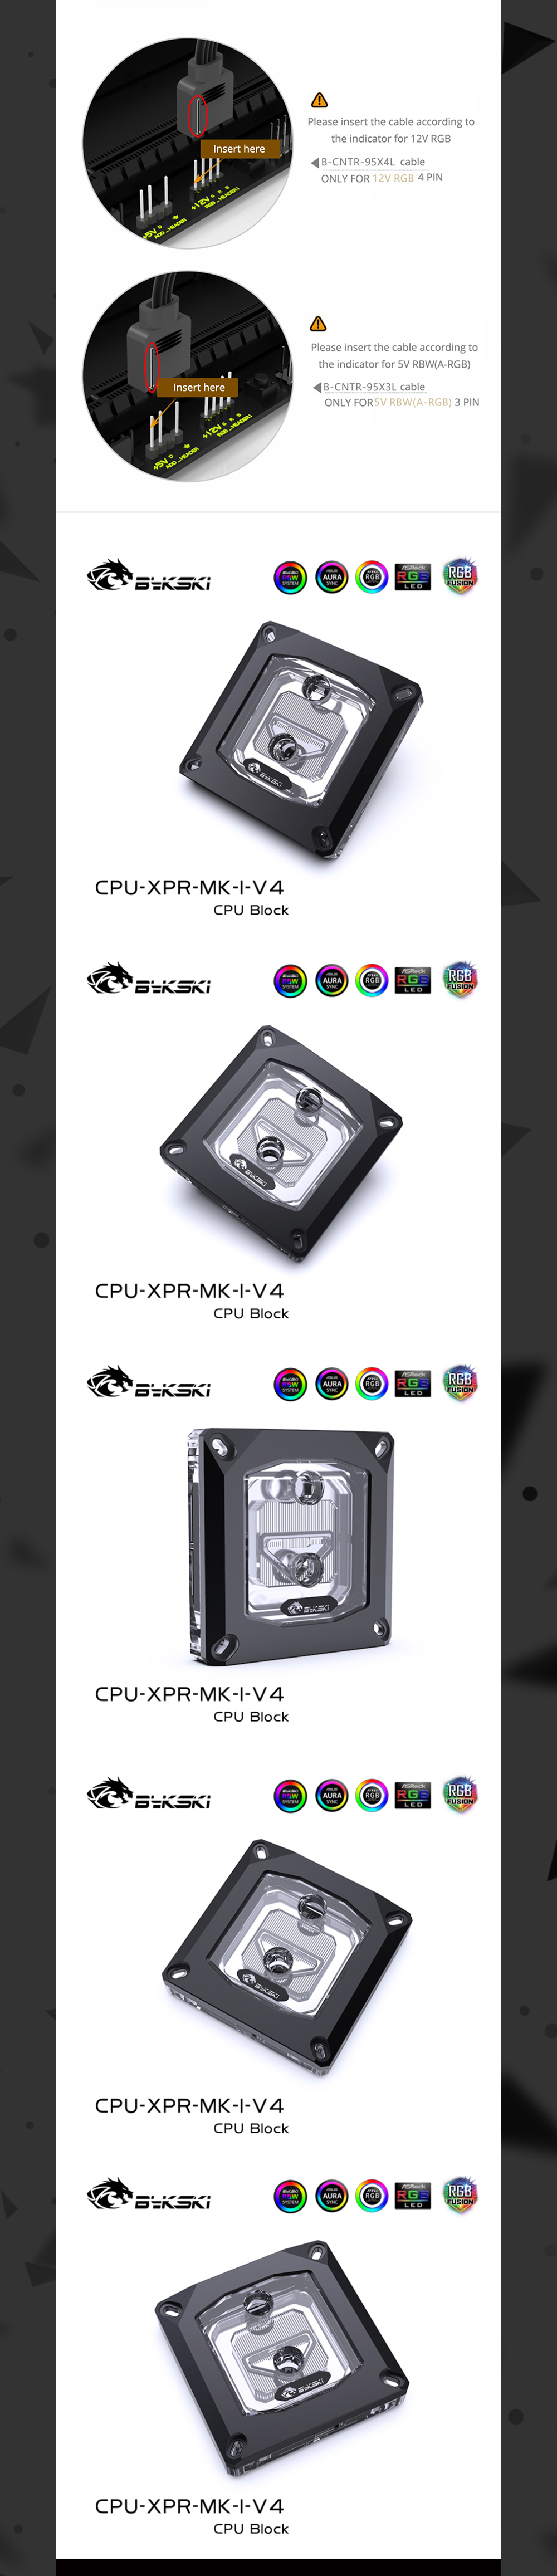 Bykski CPU Water Cooling Block For Intel Acrylic Black, Liquid Cooling System Micro Waterway, CPU-XPR-MK-I-V4